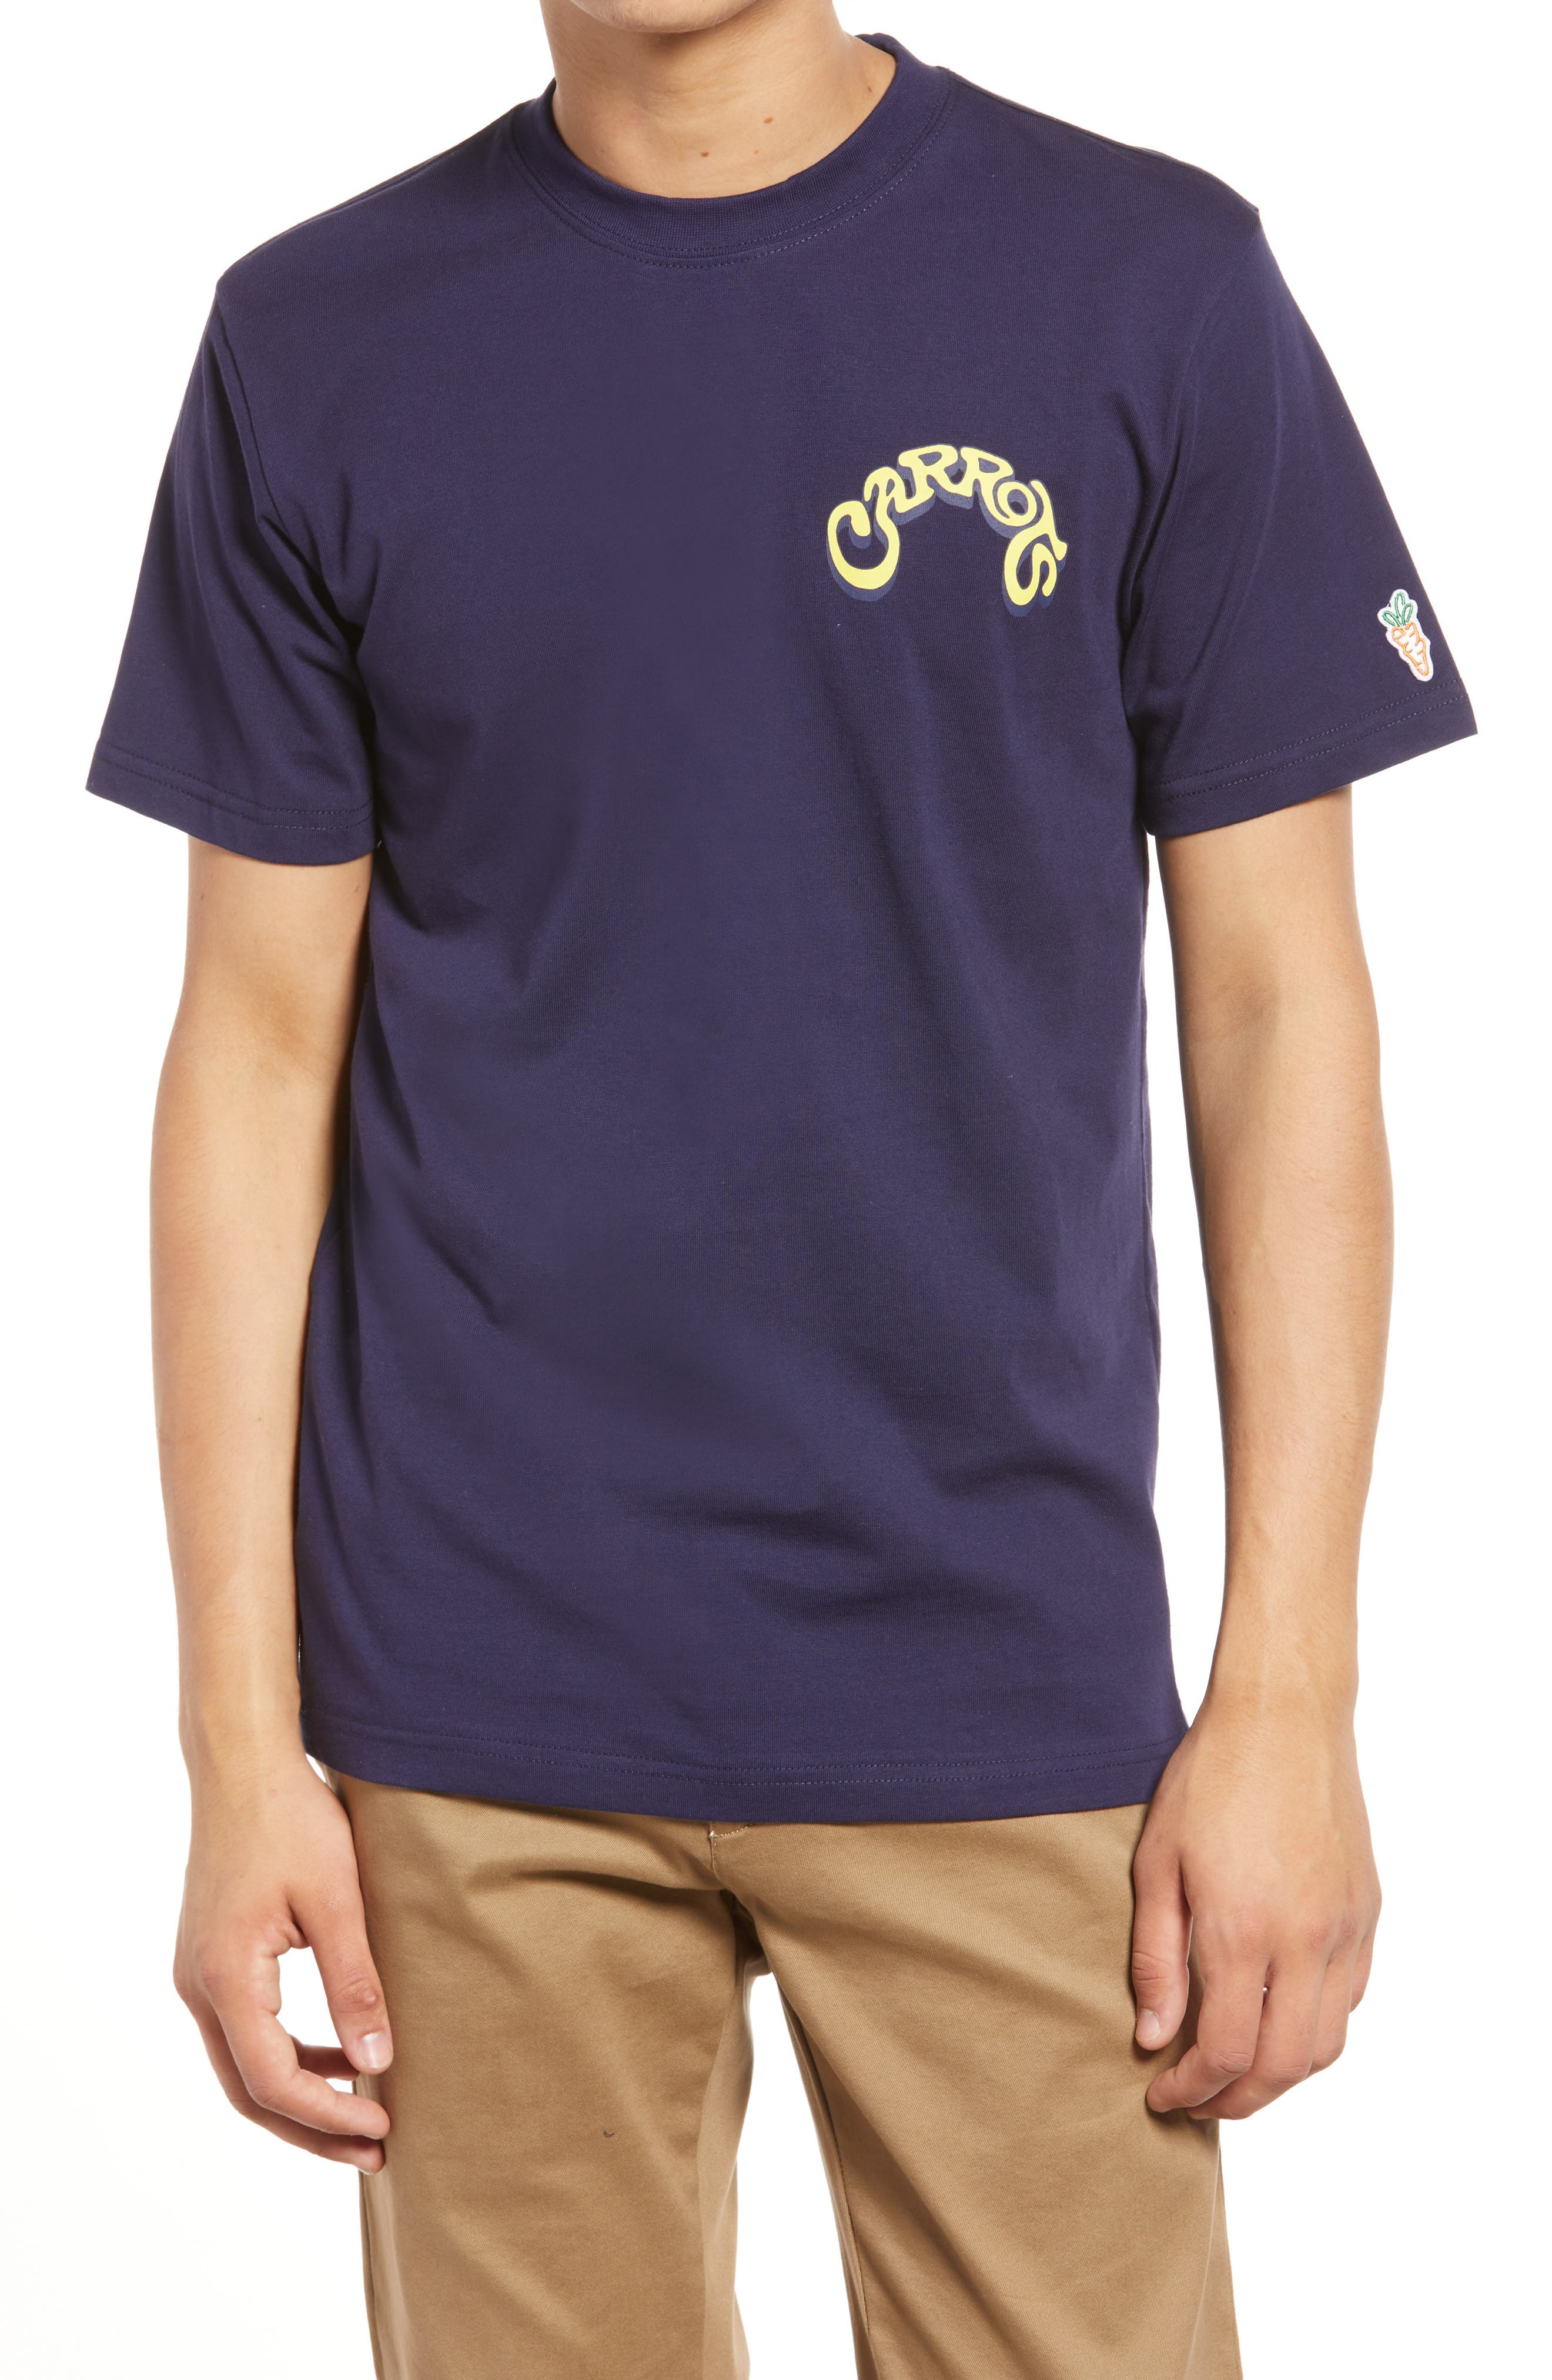 Groovy Arch Graphic Tee